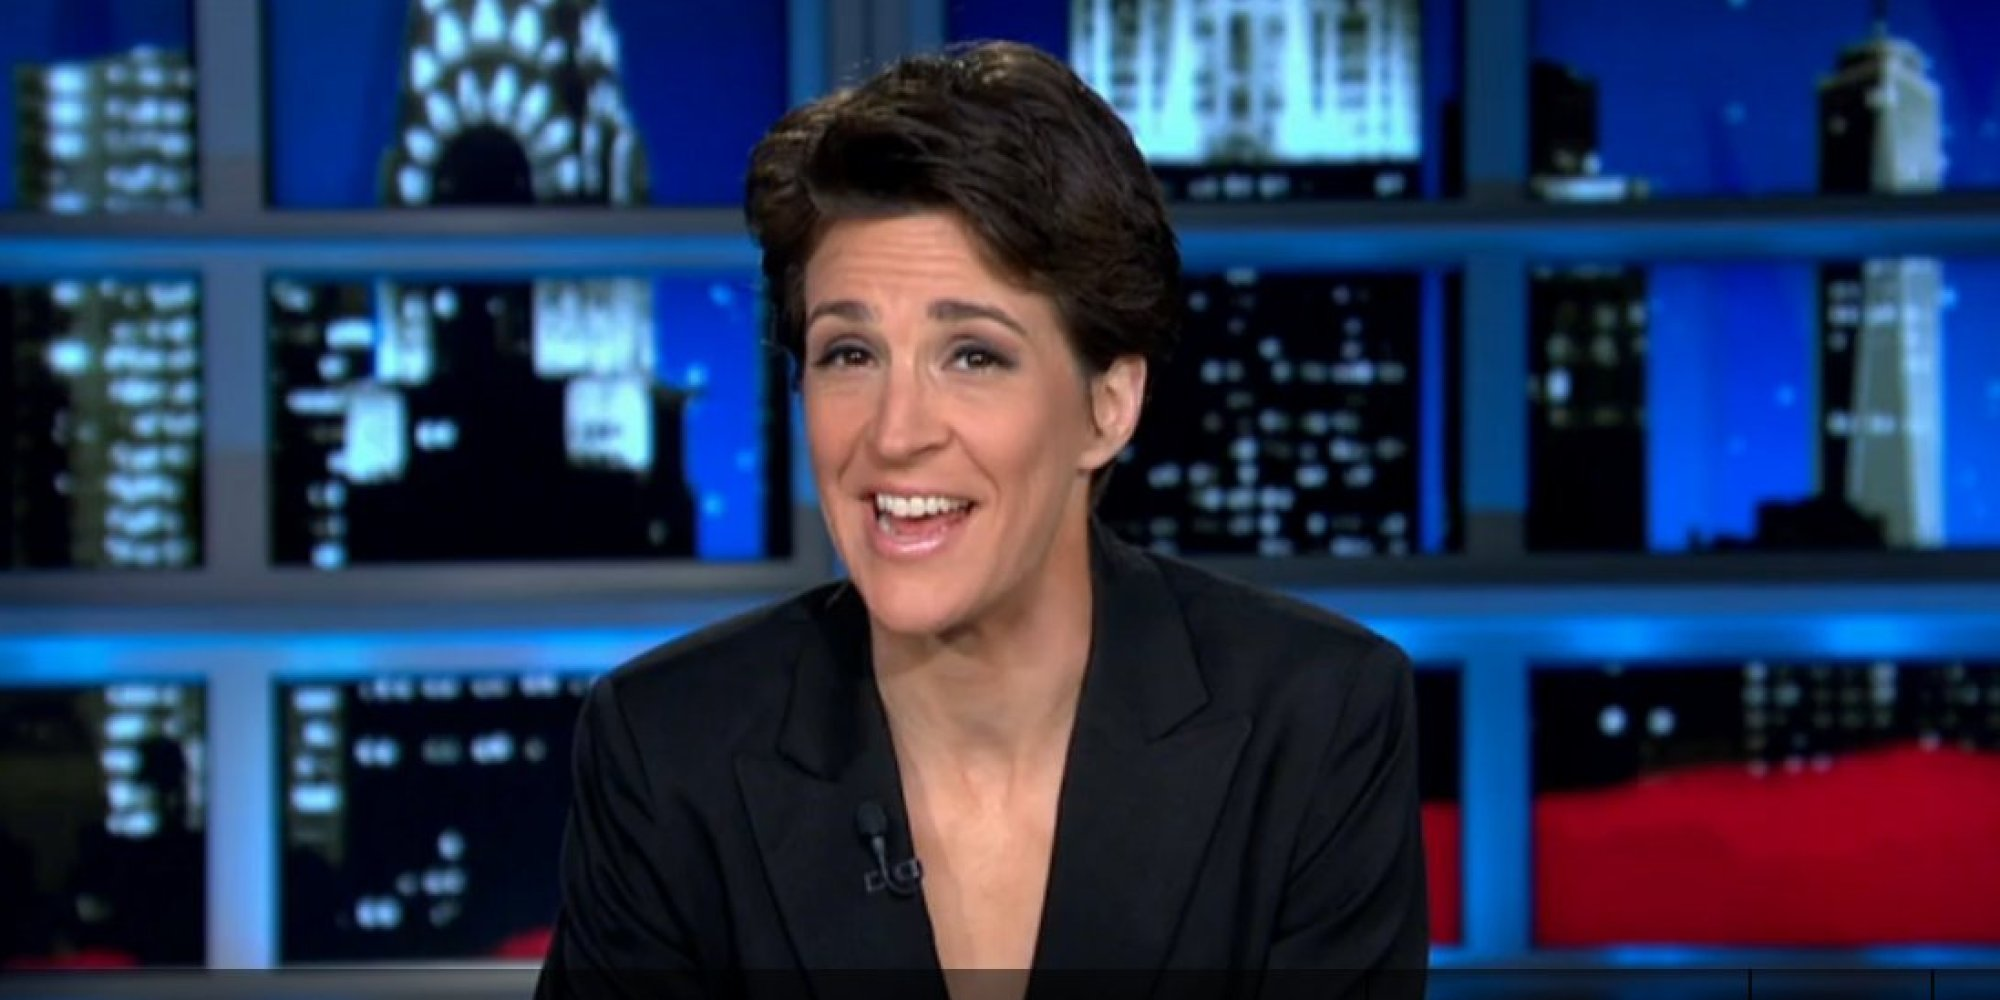 The former Air America personality has covered Russia more than any other cable news host with an analysis by the online publication The Intercept showing Maddow covering the investigation of